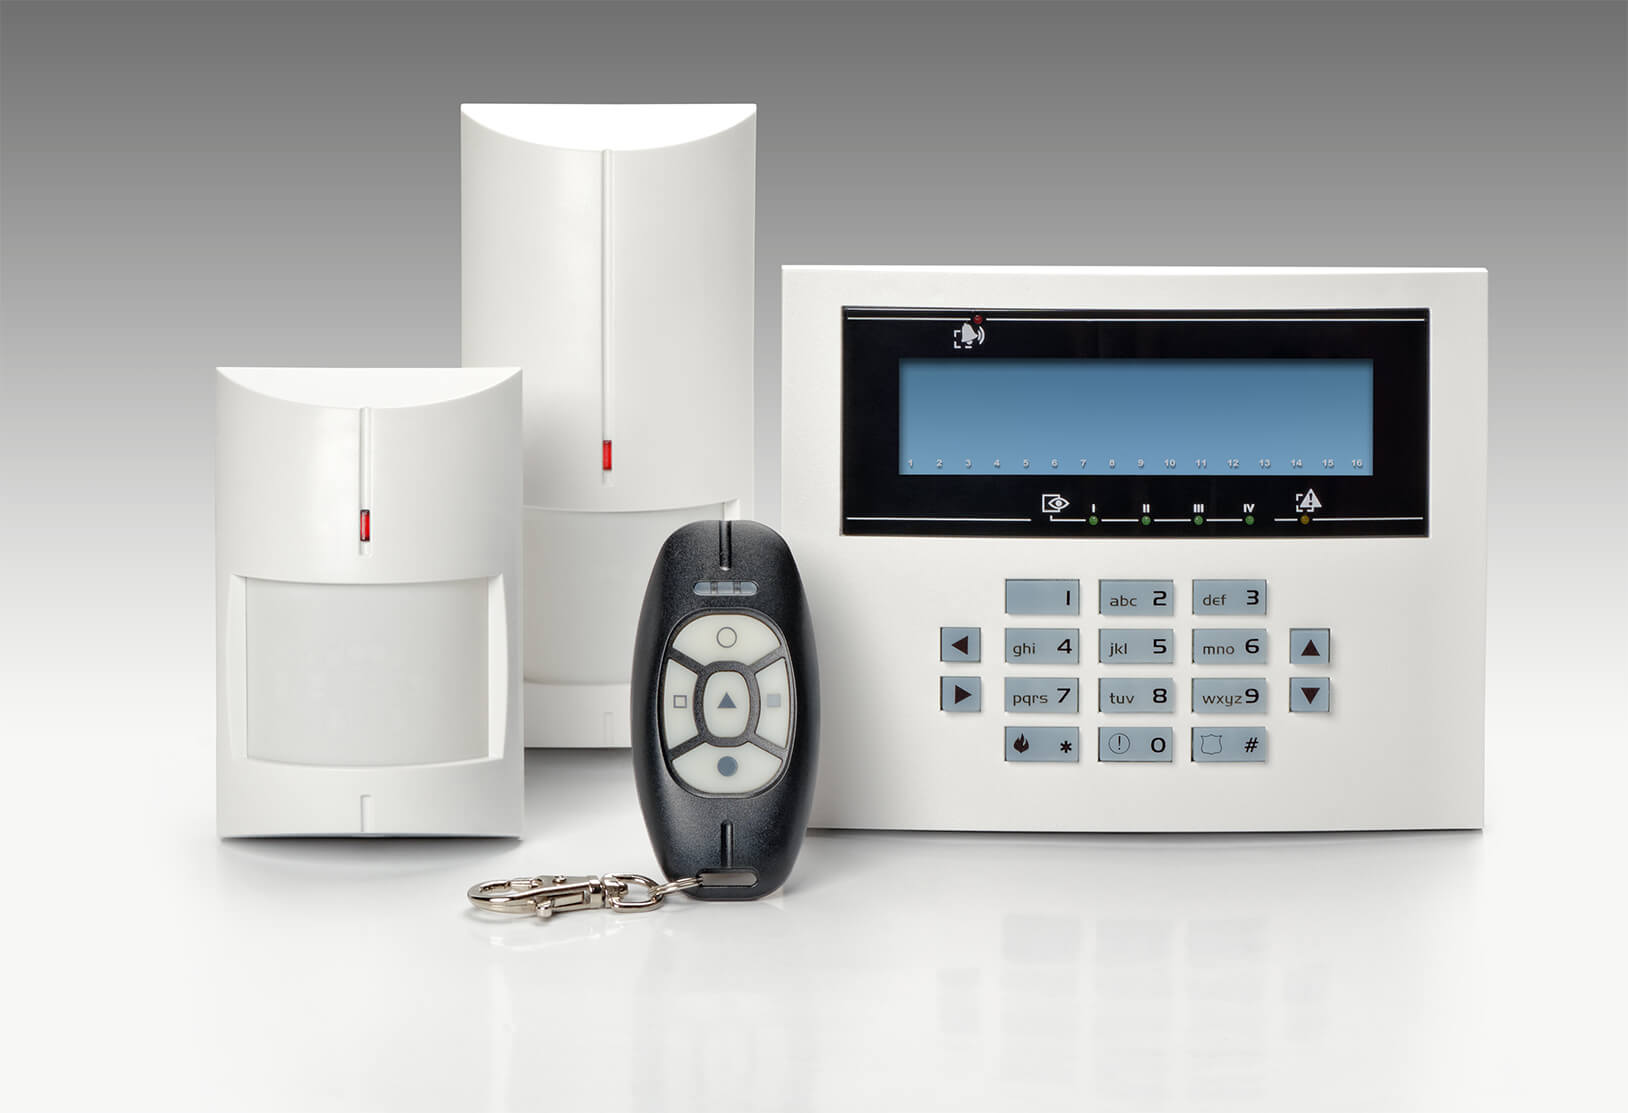 Commercial Burglar Alarms For Business in Cricklewood NW2  - Local Cricklewood NW2 burglar alarm company.Call 02078872244 - Dedicated to Safety & Security. Companies, shops and homes ..